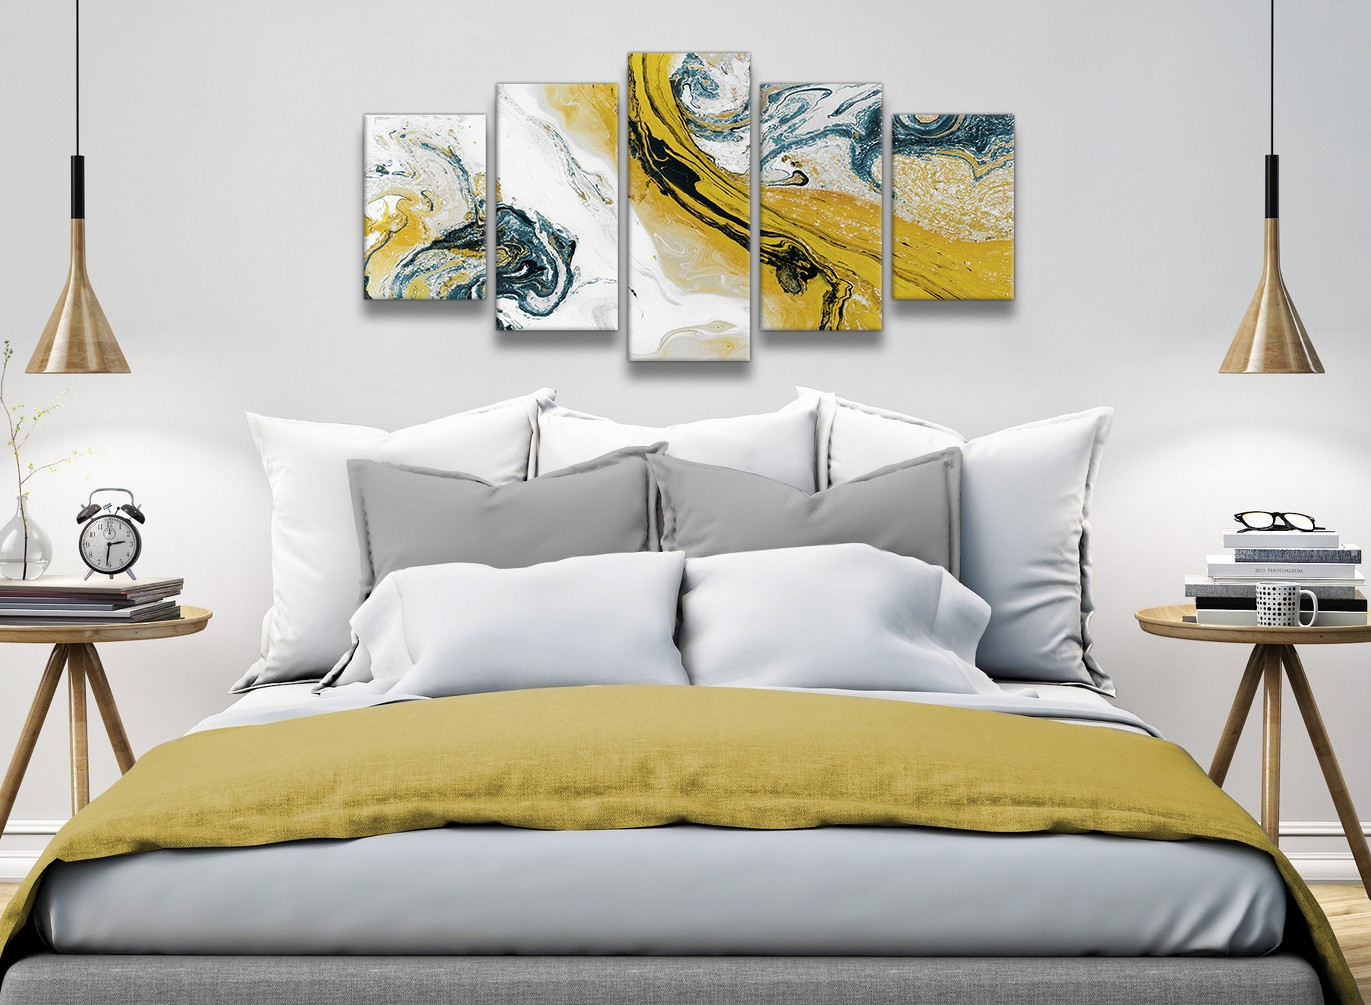 Mustard Yellow and Teal Swirl Bedroom Canvas Pictures